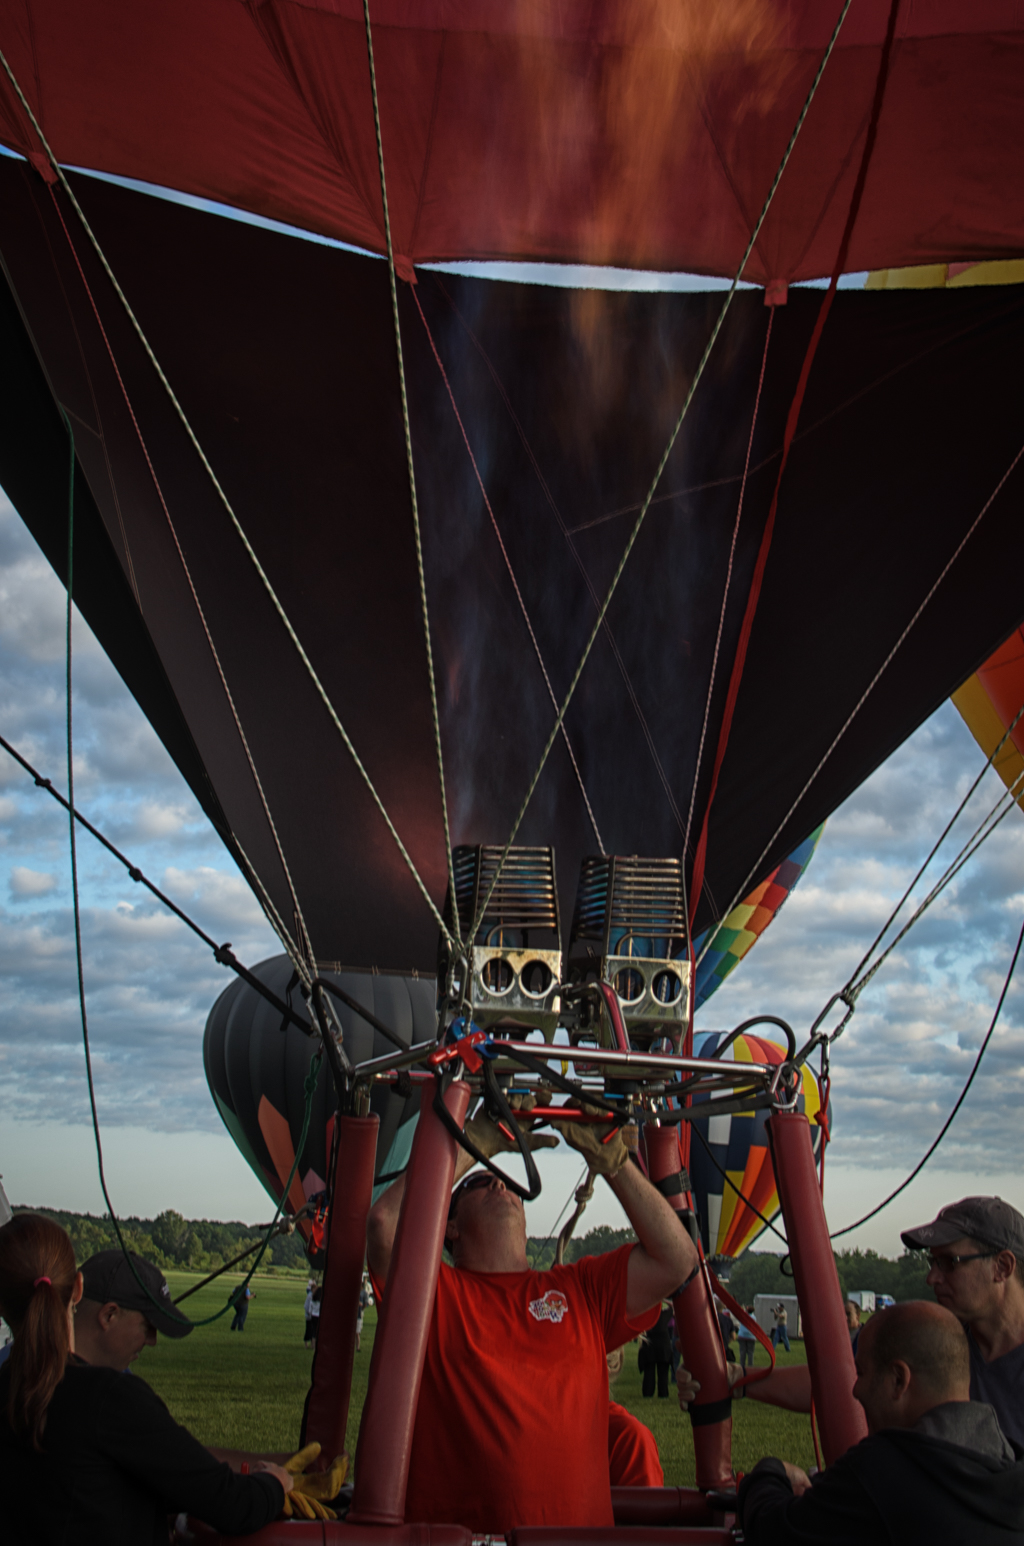 32nd annual New Jersey Festival of Ballooning, wpid14603 NIKON D5100 20140725 1058 Edit